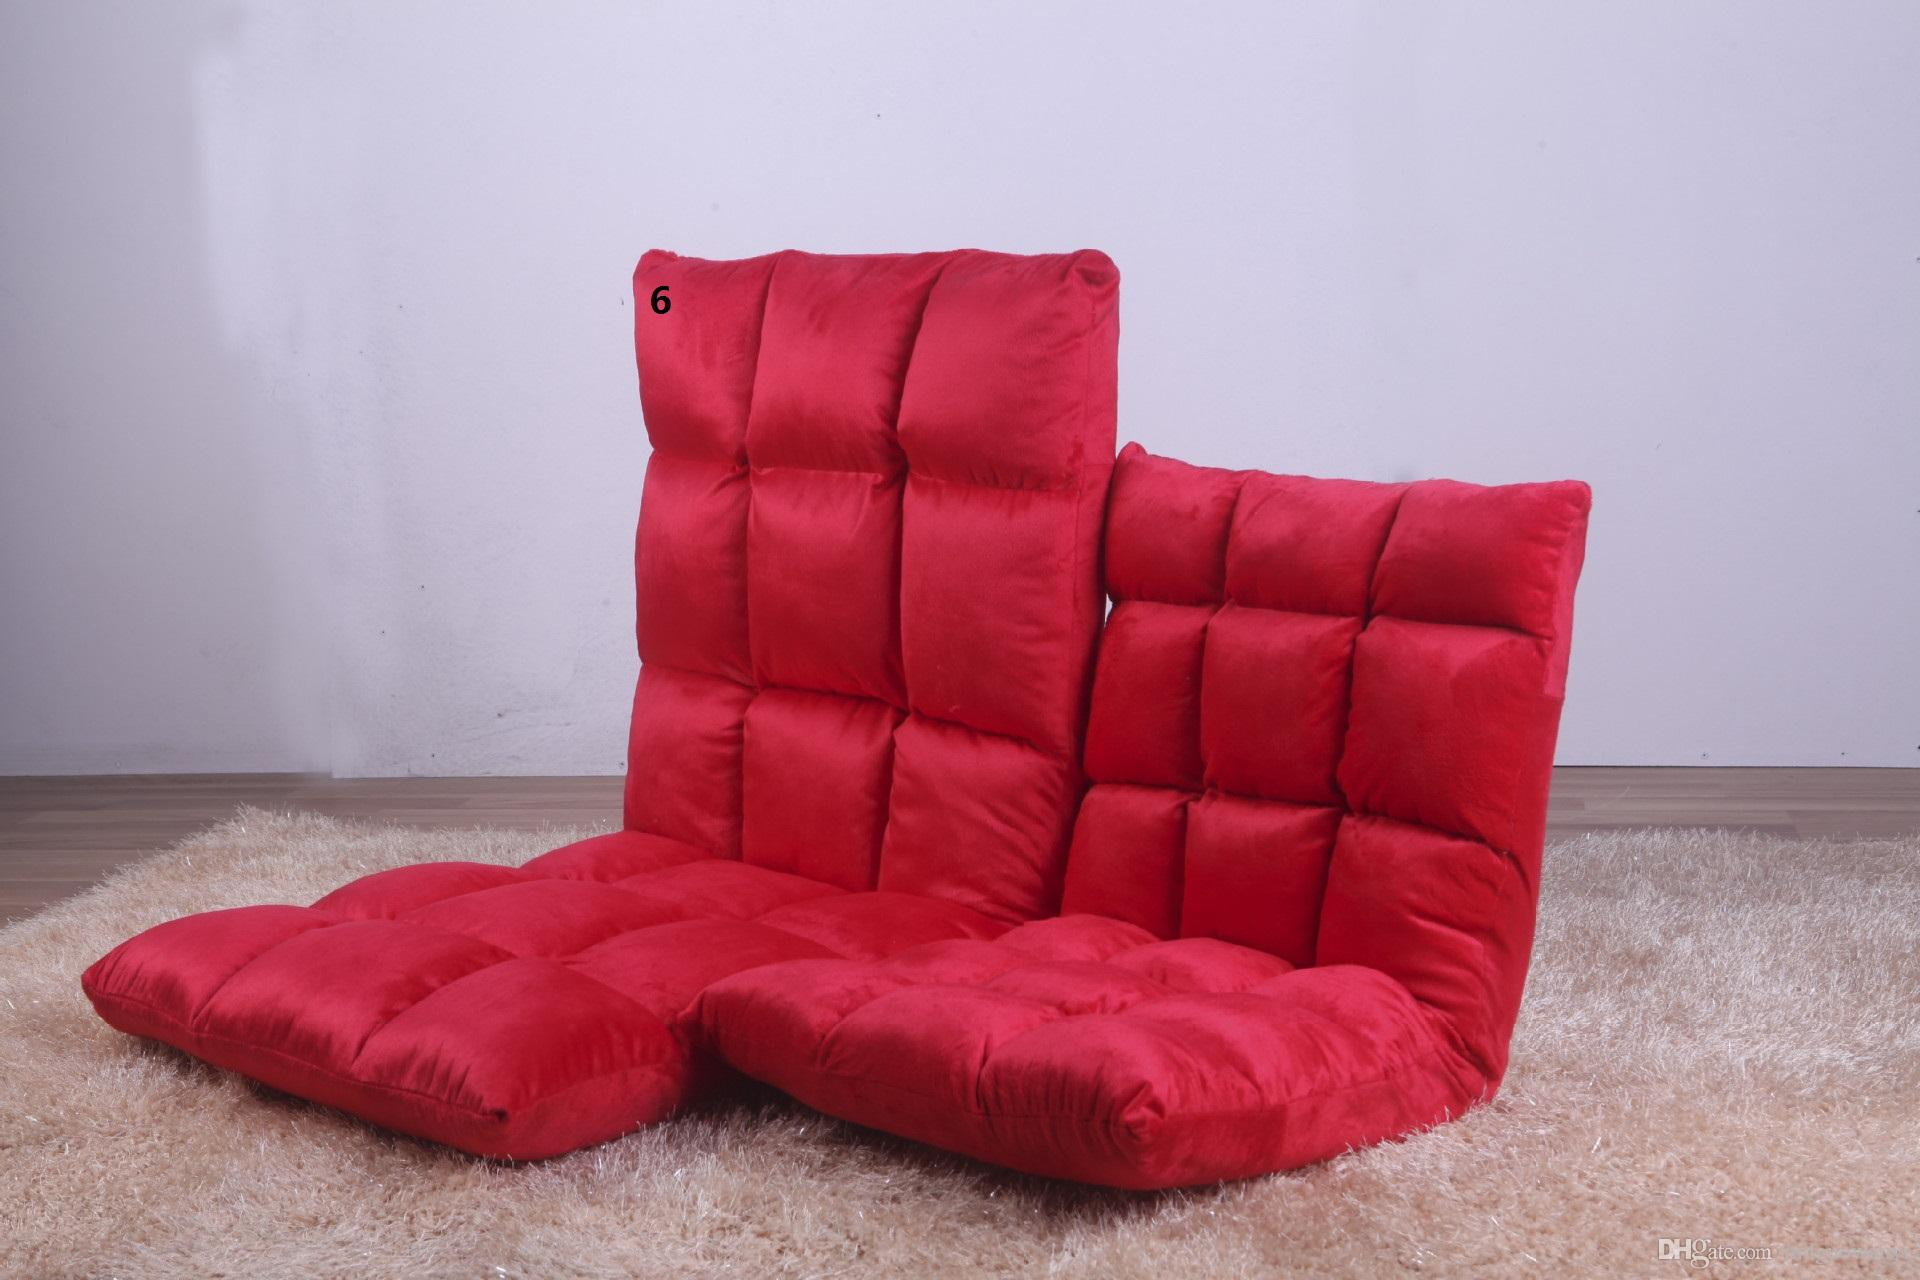 Admirable 2019 6 Gears Lazy Sofa Couch Rice Small Single Sofa Chair Folding Bed Floor Chair Window Chair Fashion Mini Sofa From Wanyibao886 13 77 Dhgate Com Evergreenethics Interior Chair Design Evergreenethicsorg